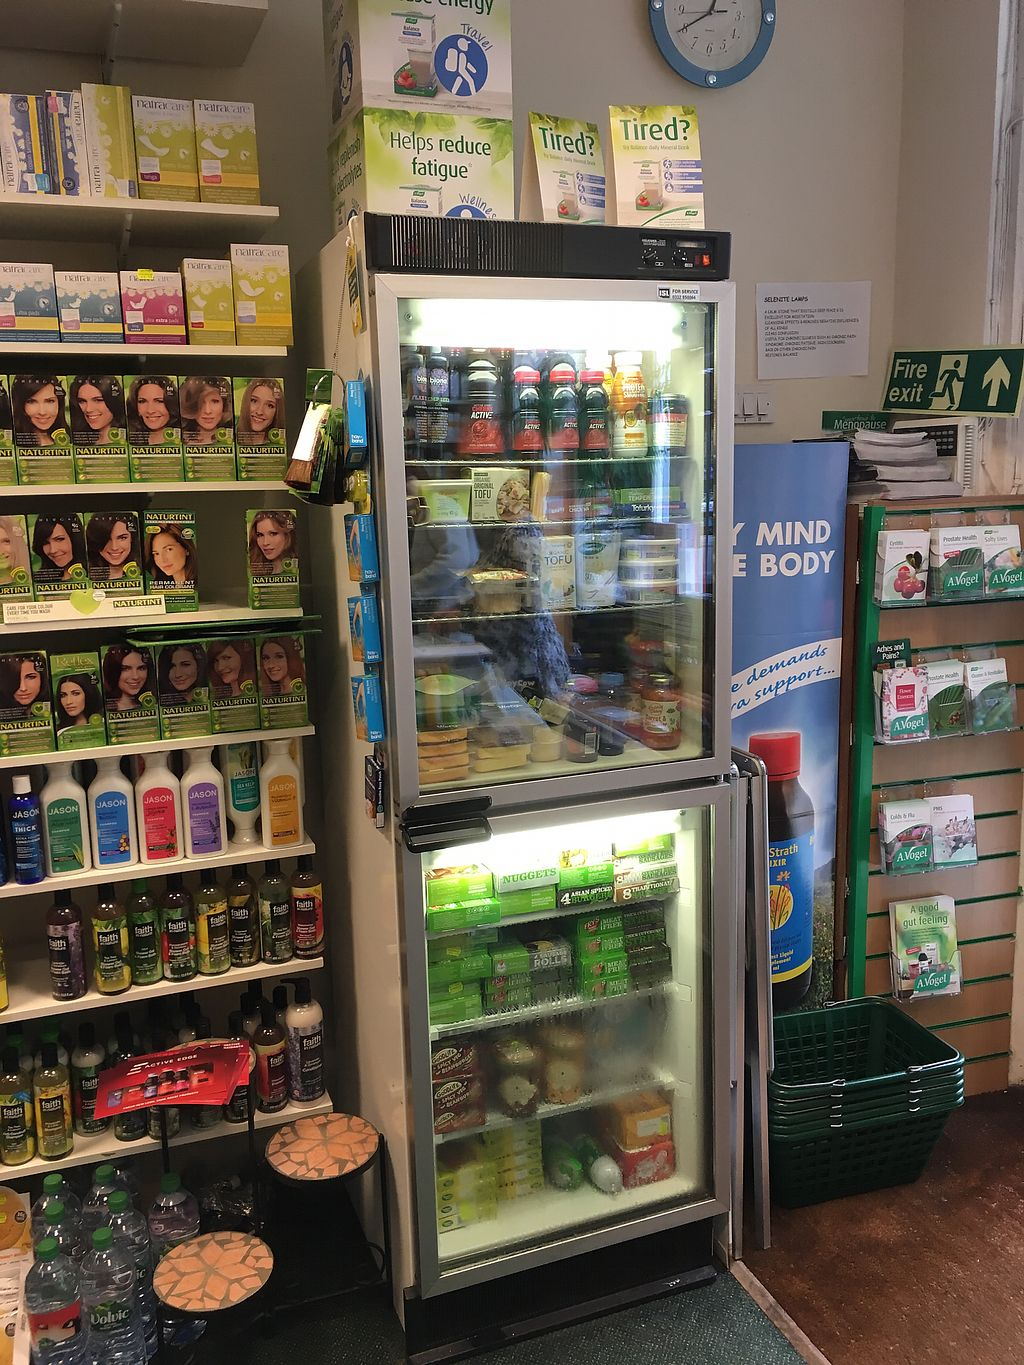 """Photo of For Goodness Sake Health Store  by <a href=""""/members/profile/hack_man"""">hack_man</a> <br/>The fridge & freezer  <br/> May 25, 2018  - <a href='/contact/abuse/image/15286/404868'>Report</a>"""